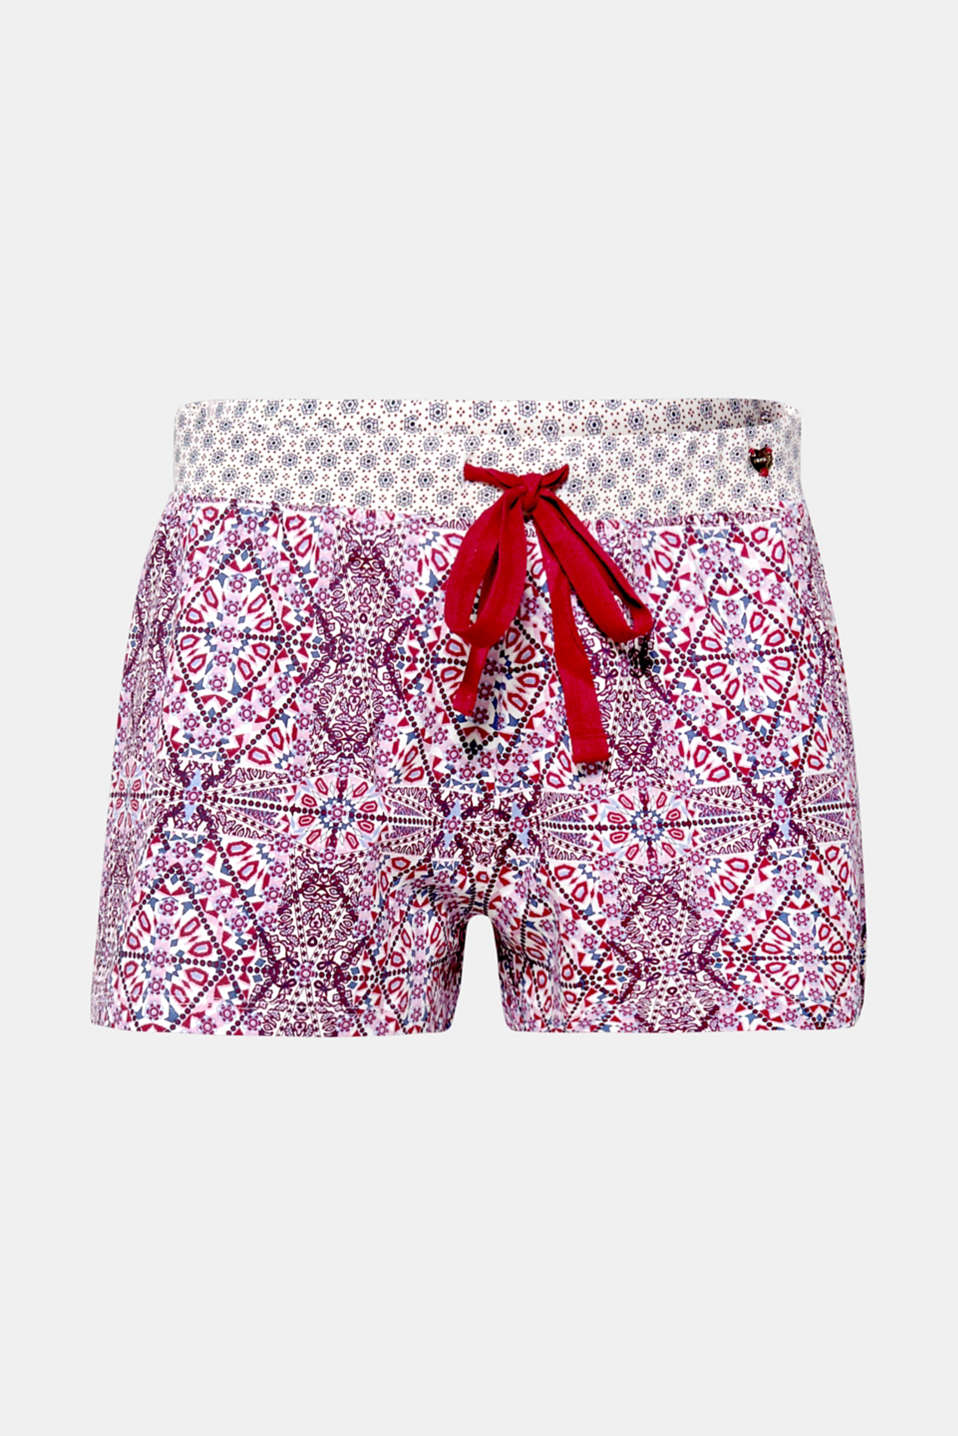 A colourful combination of patterns! These jersey shorts owes their unmistakably stylish look to the combination of big and small ornamental prints.